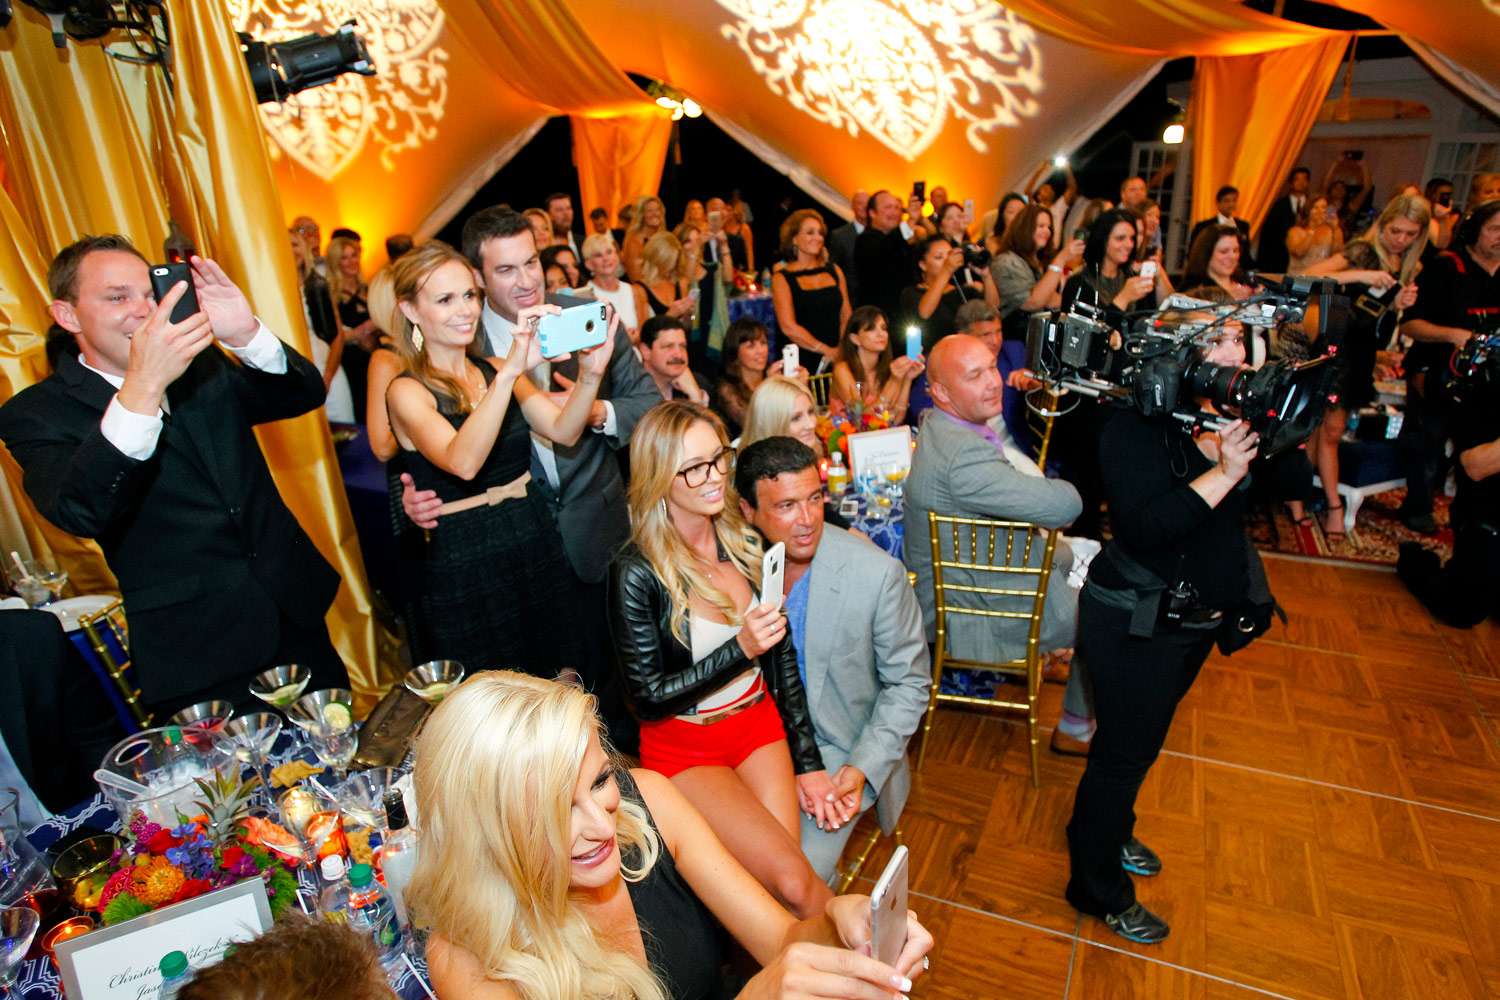 event-photographer-madison-wi-autism-ruthie-hauge-generation-rescue-night-of-hope-oscar-swan-jenny-mccarthy-donnie-wahlberg-30.jpg